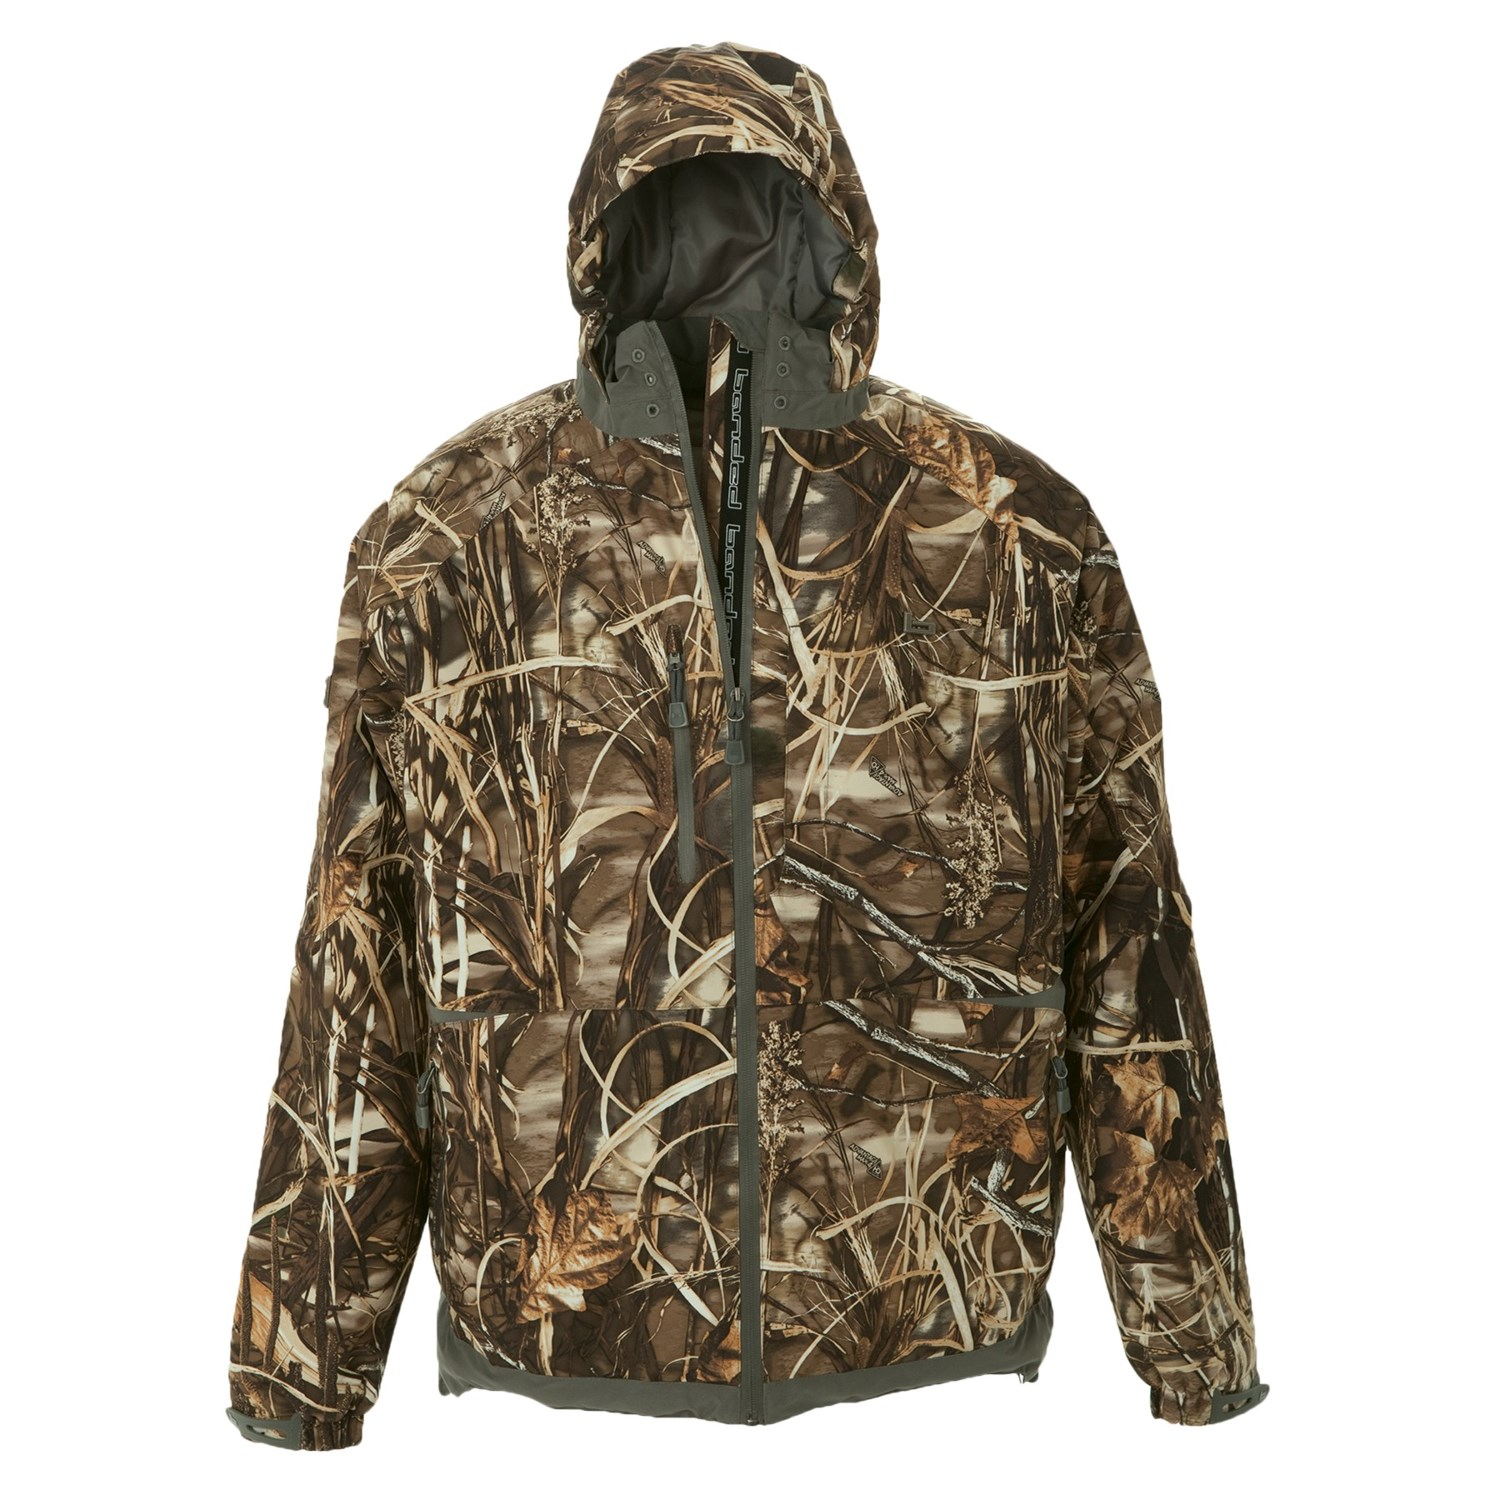 Realtree Women's Softshell Jacket - $79.99 - This Realtree Xtra camo Women's Softshell Jacket is designed specifically for women and engineered to deliver